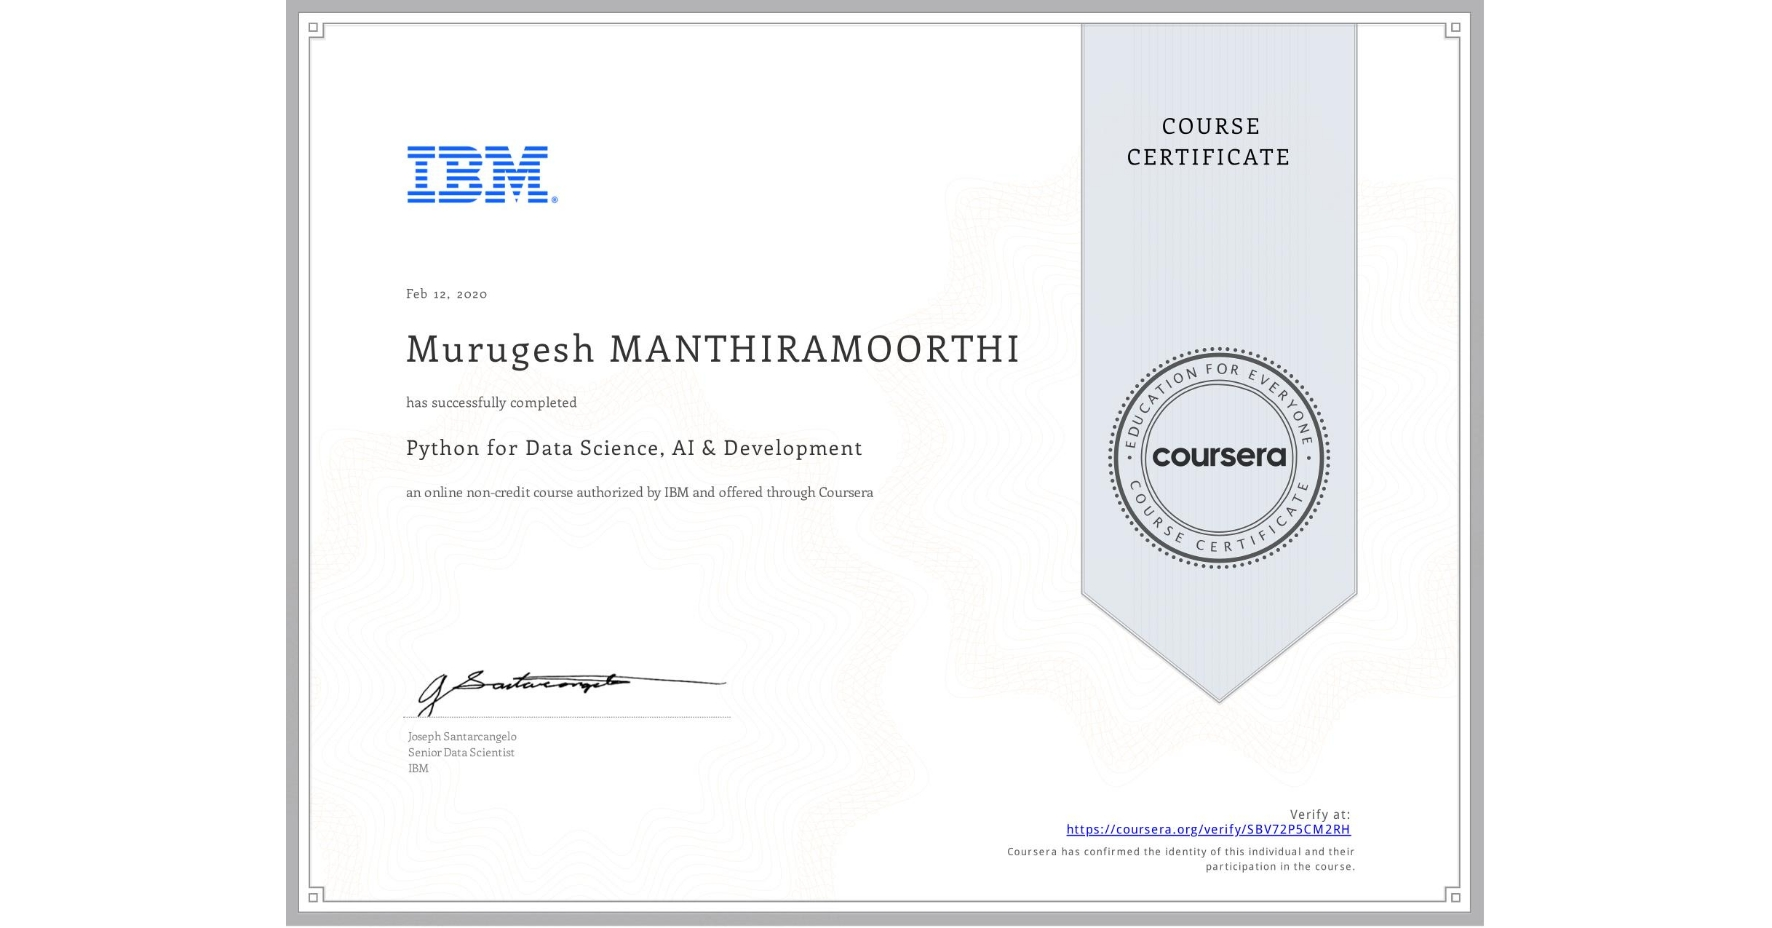 View certificate for Murugesh Manthiramoorthi, Python for Data Science, AI & Development, an online non-credit course authorized by IBM and offered through Coursera